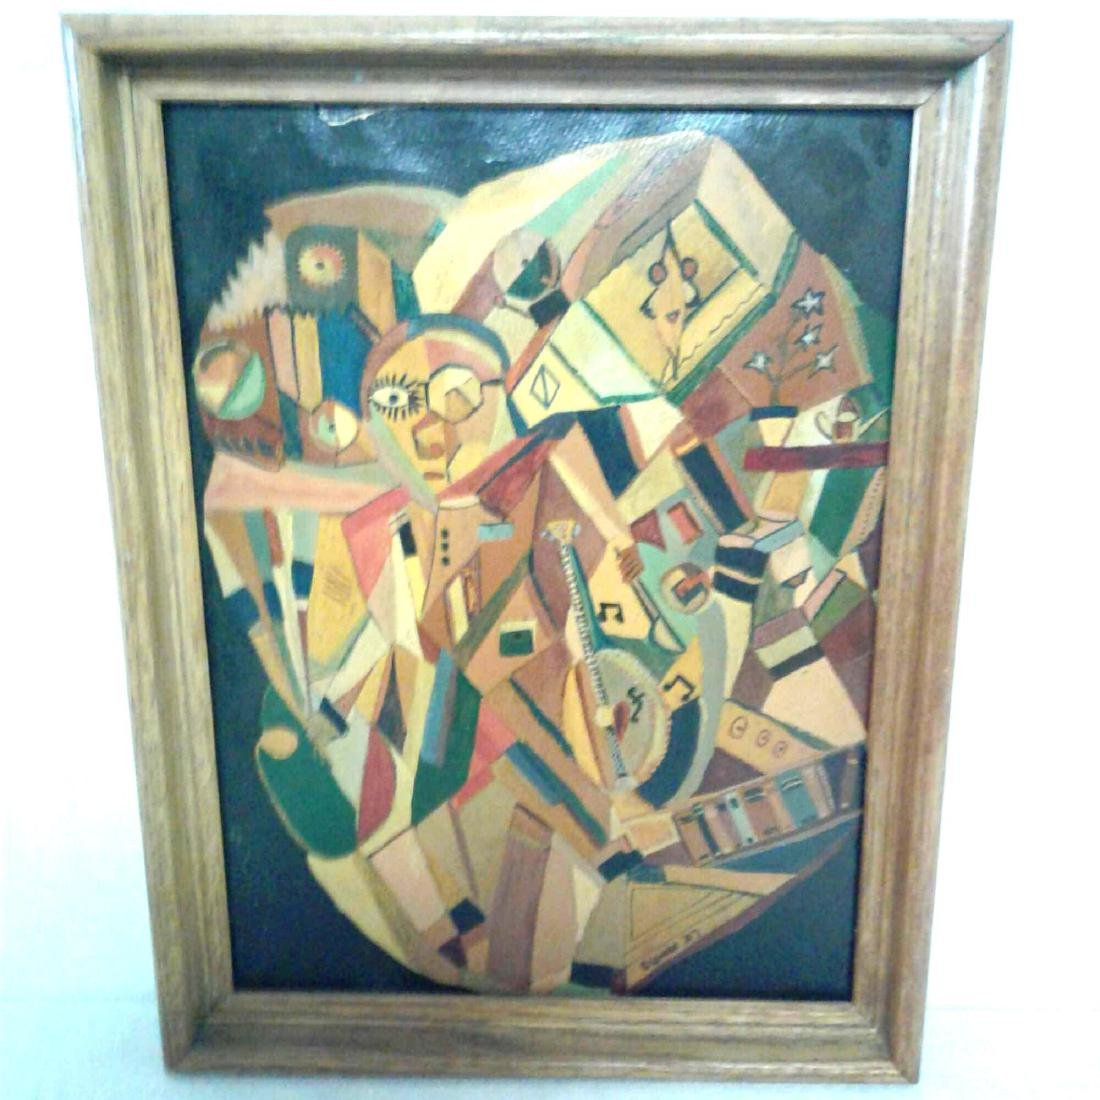 Framed Original Painting Signed by Eisman, 1947